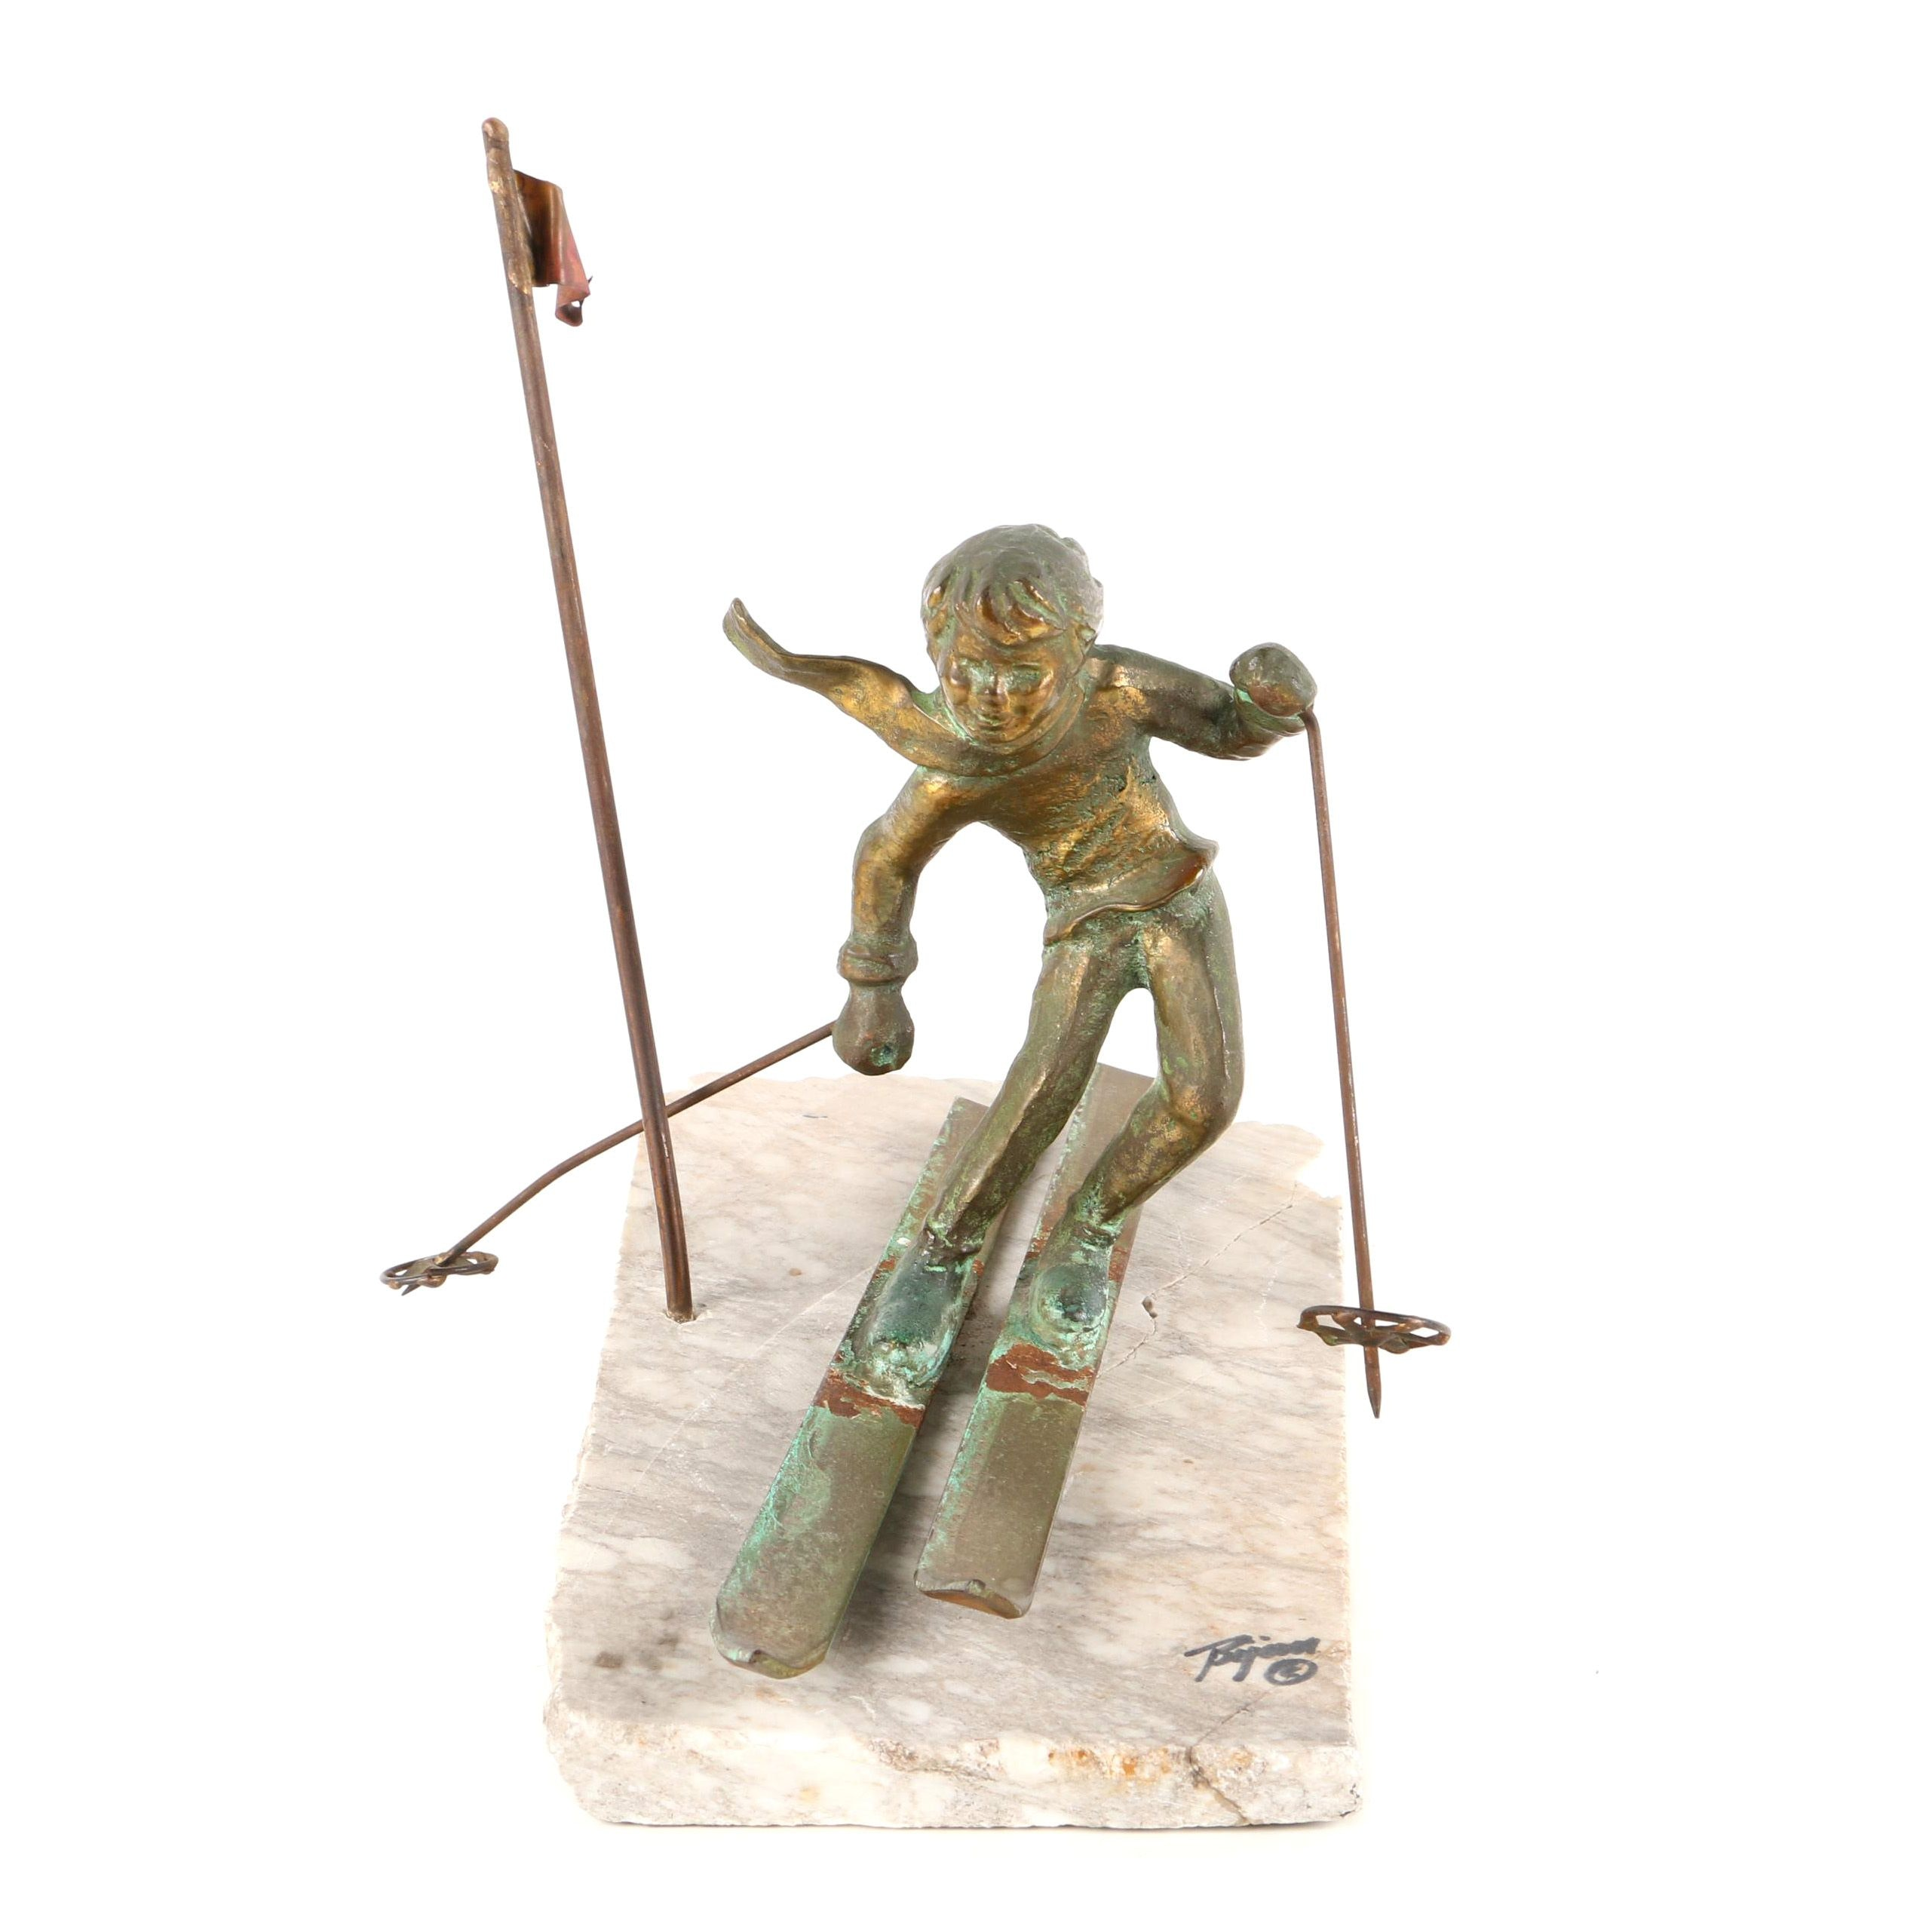 Brian Bijan Brass Sculpture of Skier on Marble Base